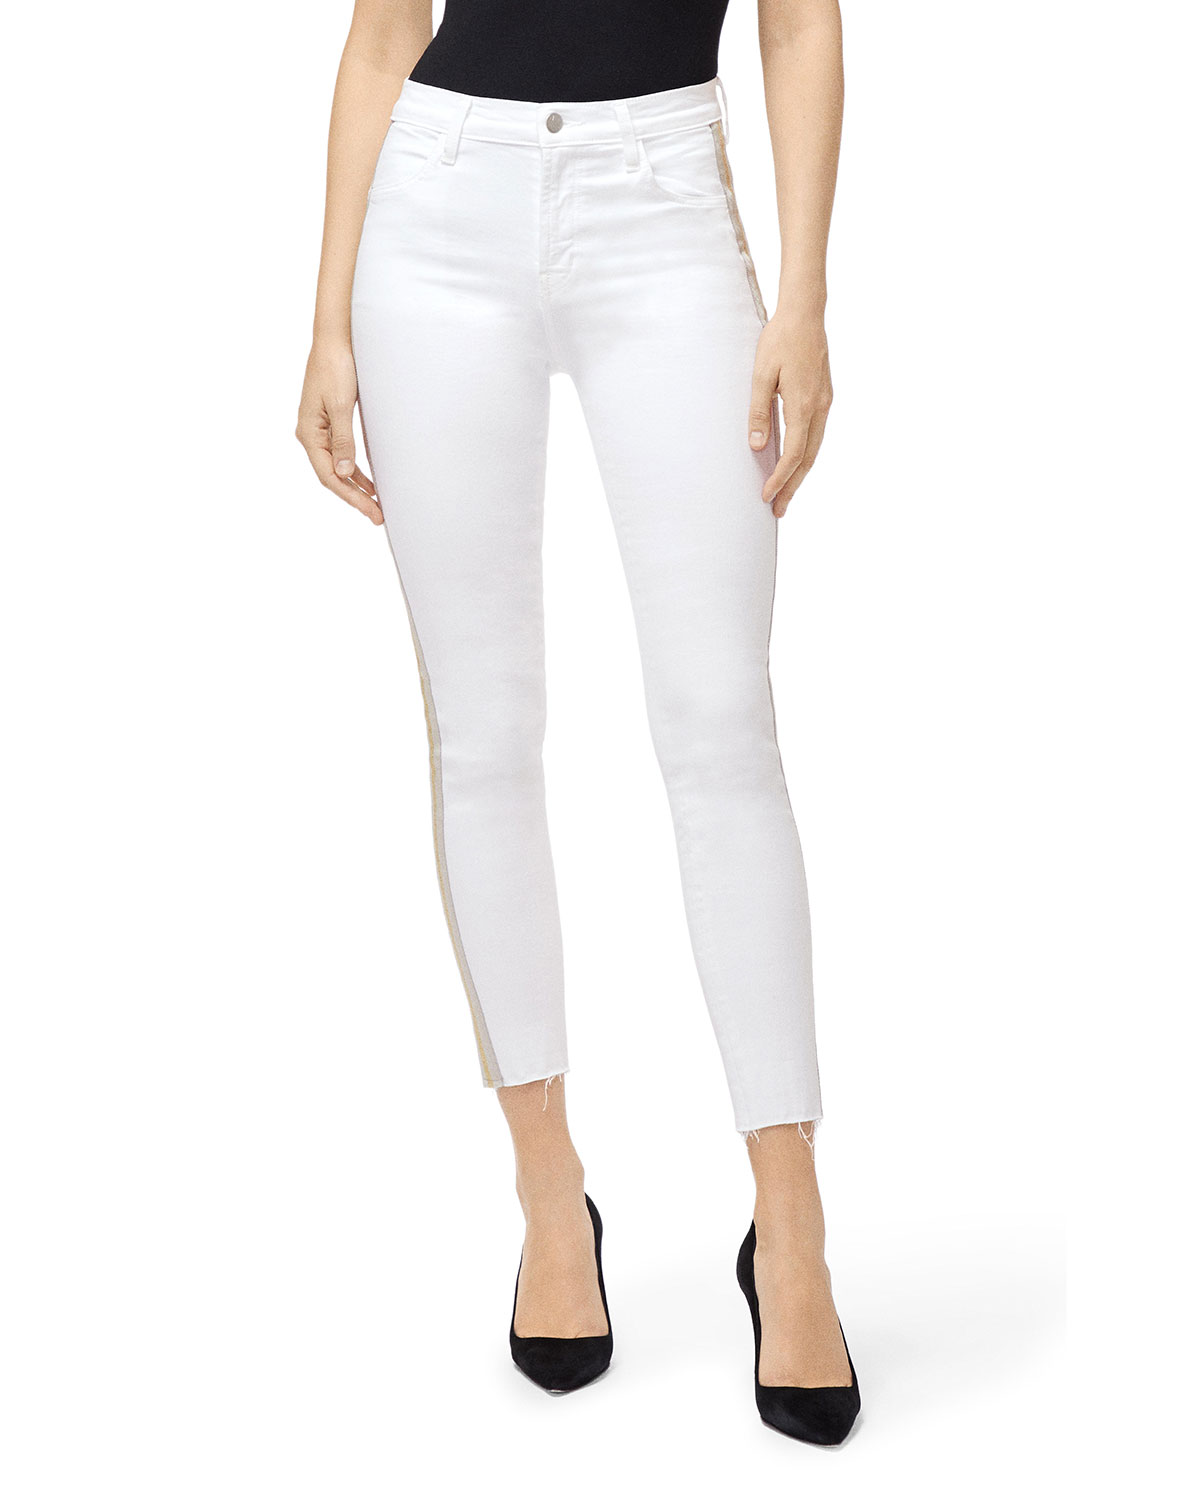 J Brand Jeans ALANA HIGH-RISE CROP SKINNY JEANS WITH SIDE STRIPES